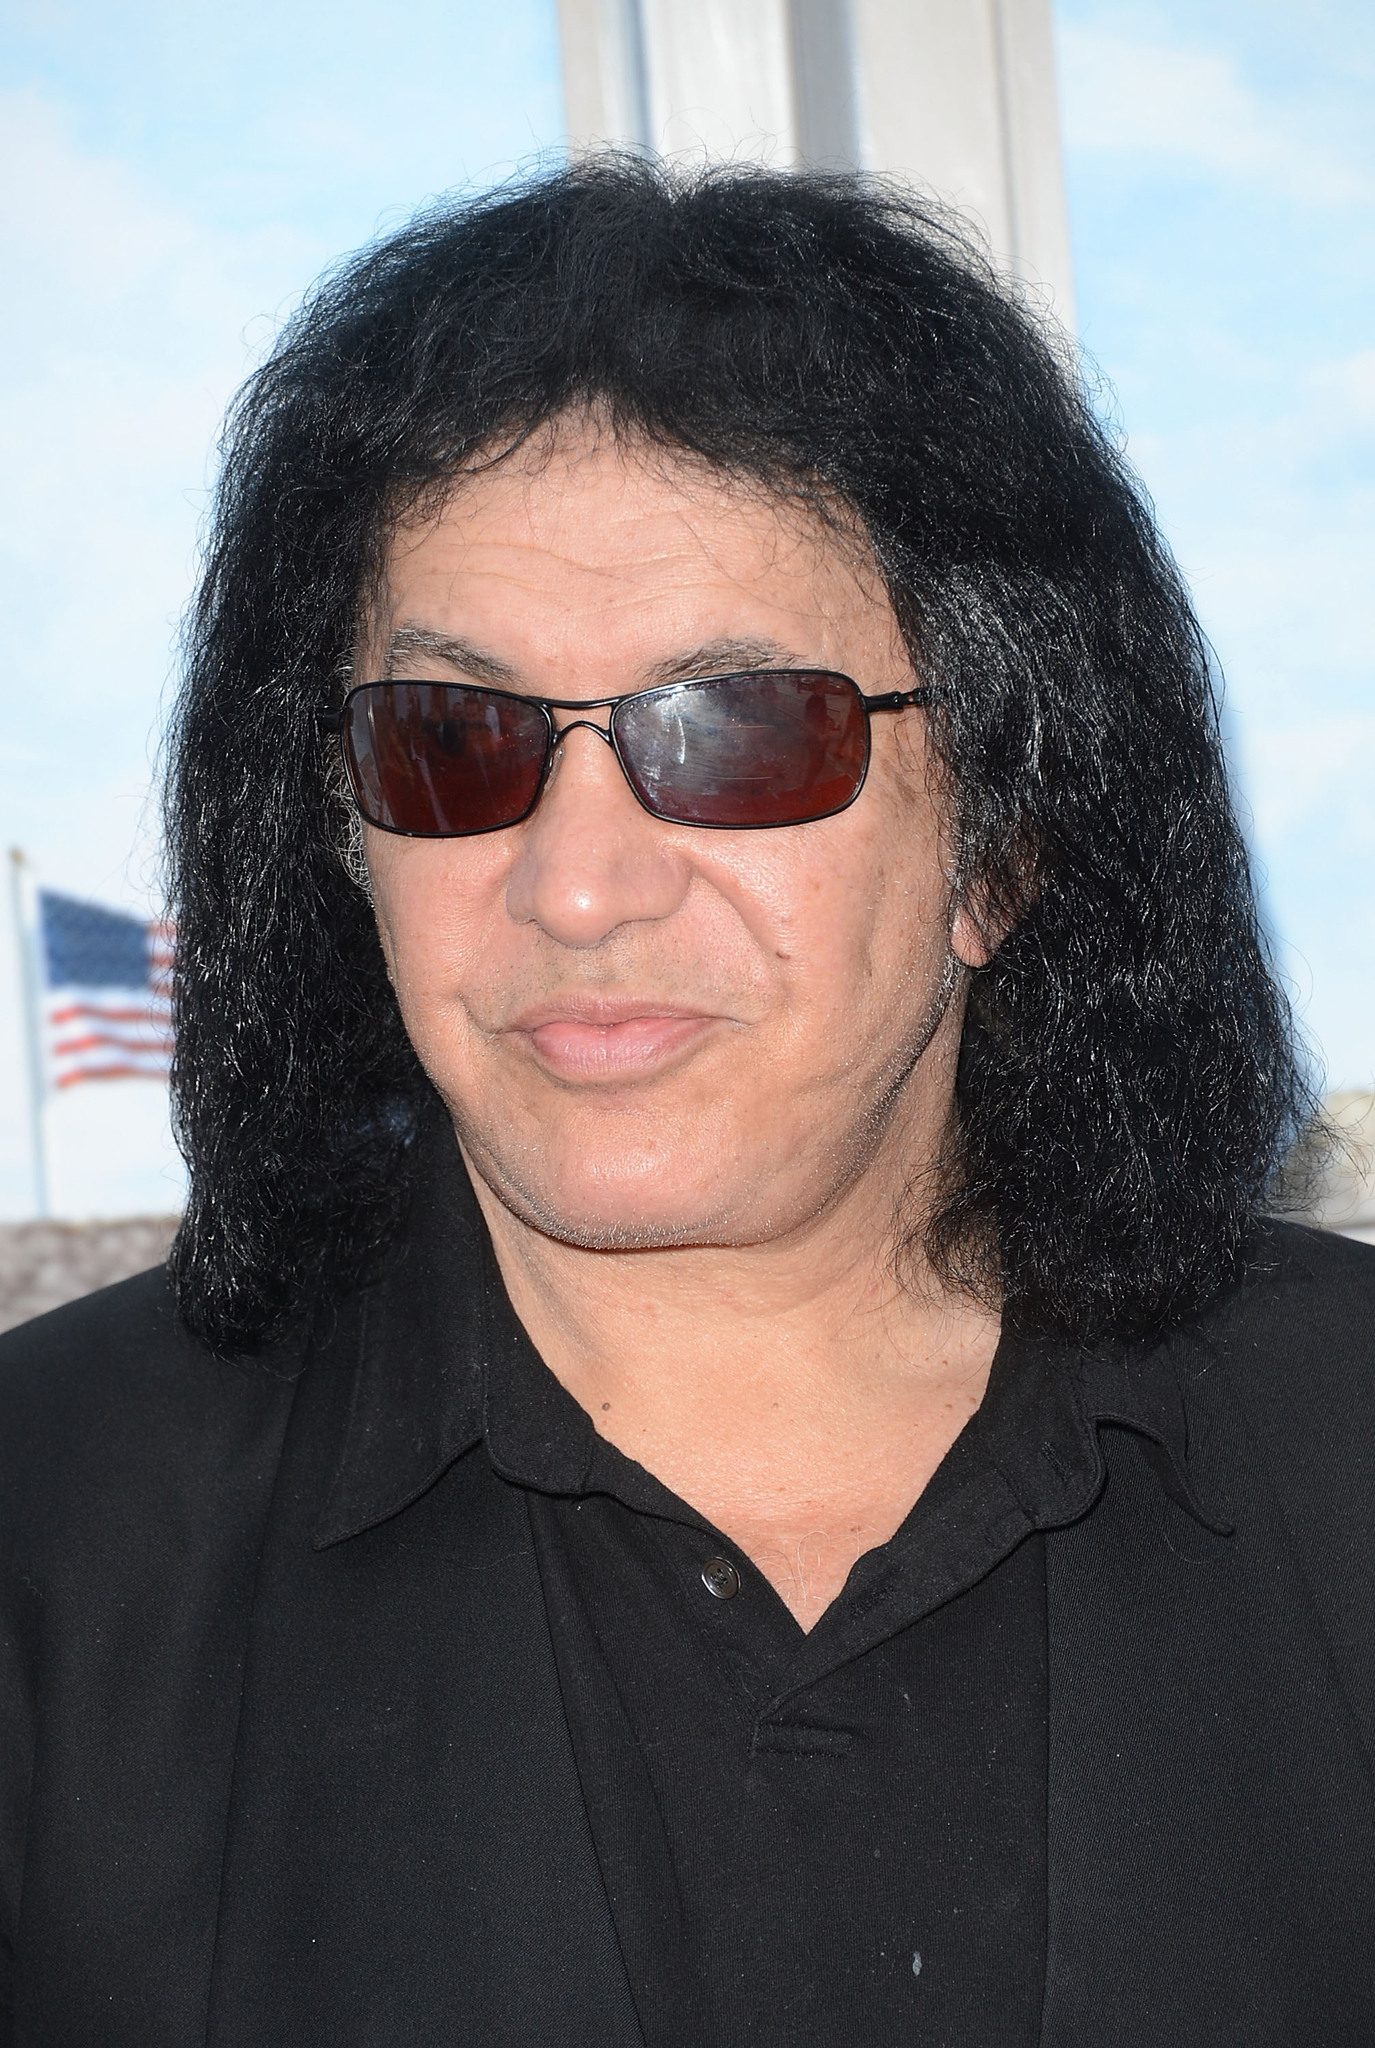 Gene Simmons at an event for That's My Boy (2012)